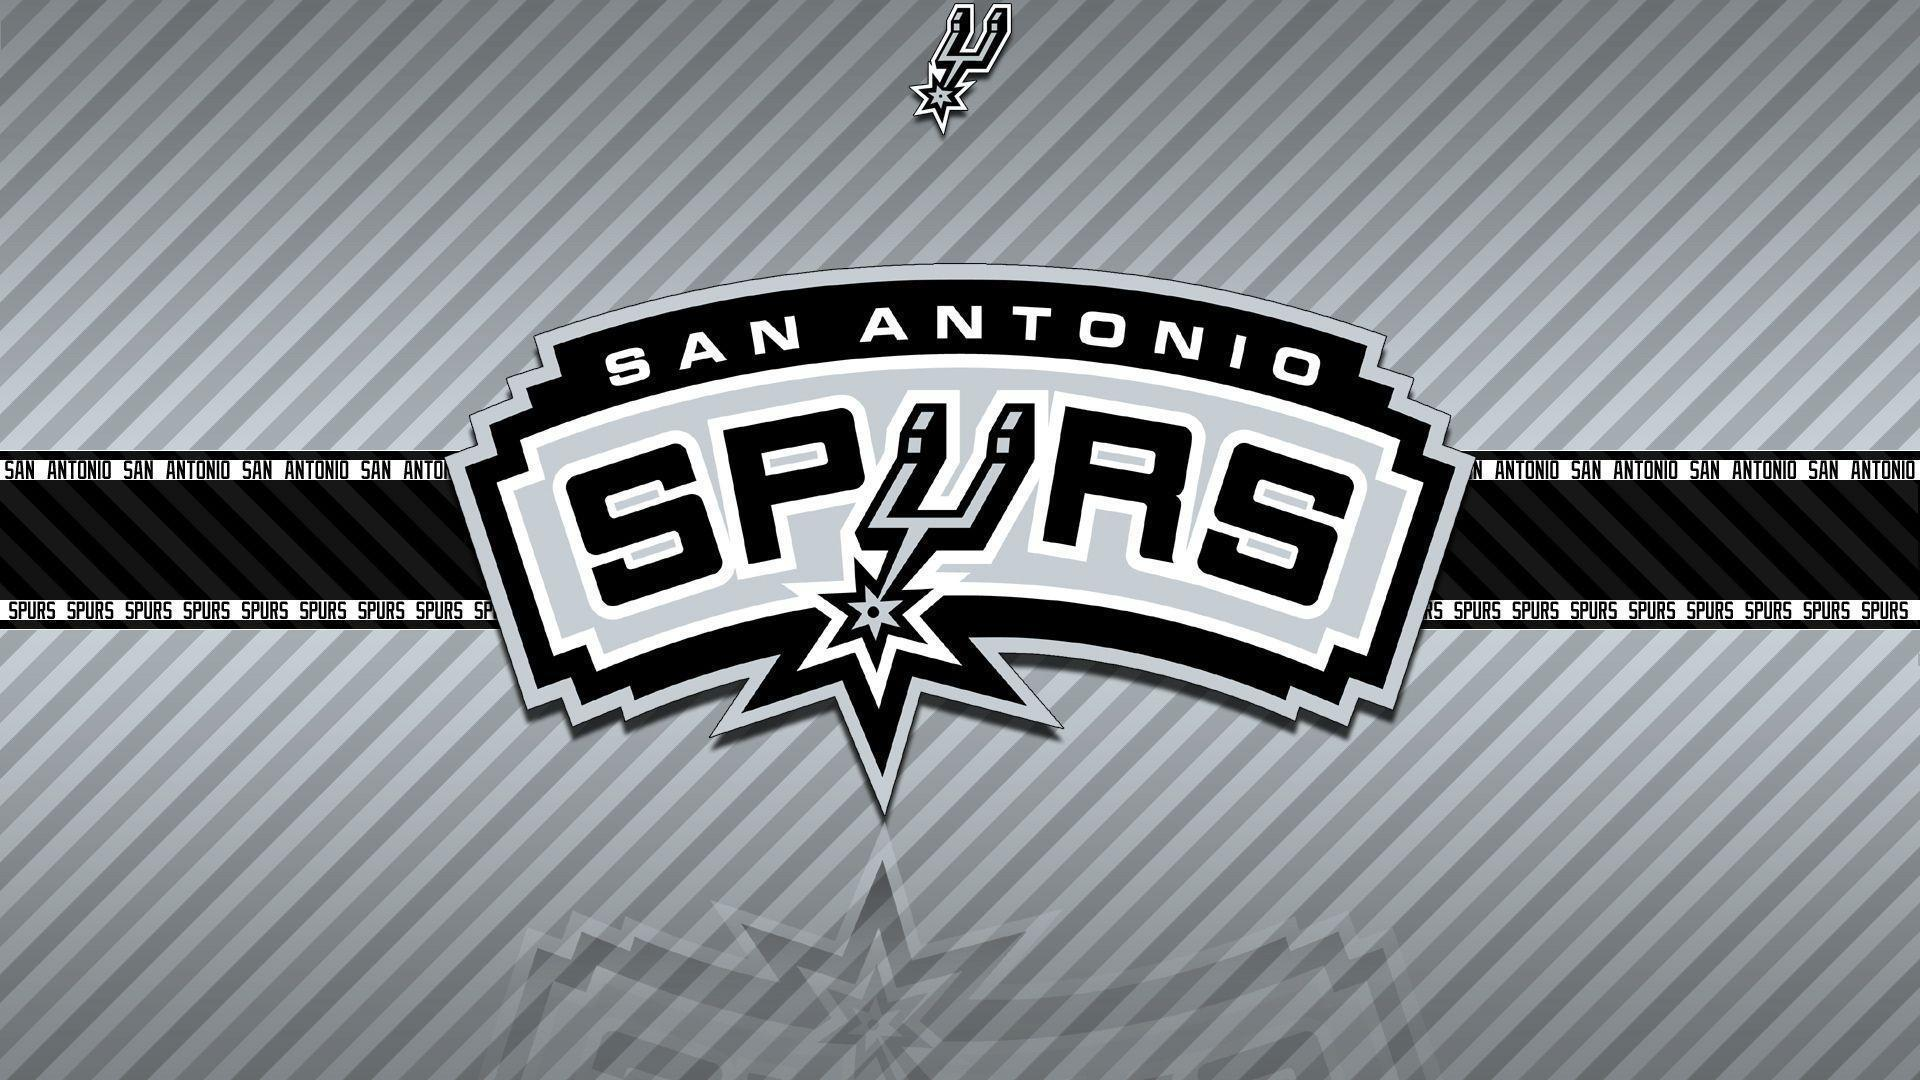 Spurs Wallpaper - wallpaper.